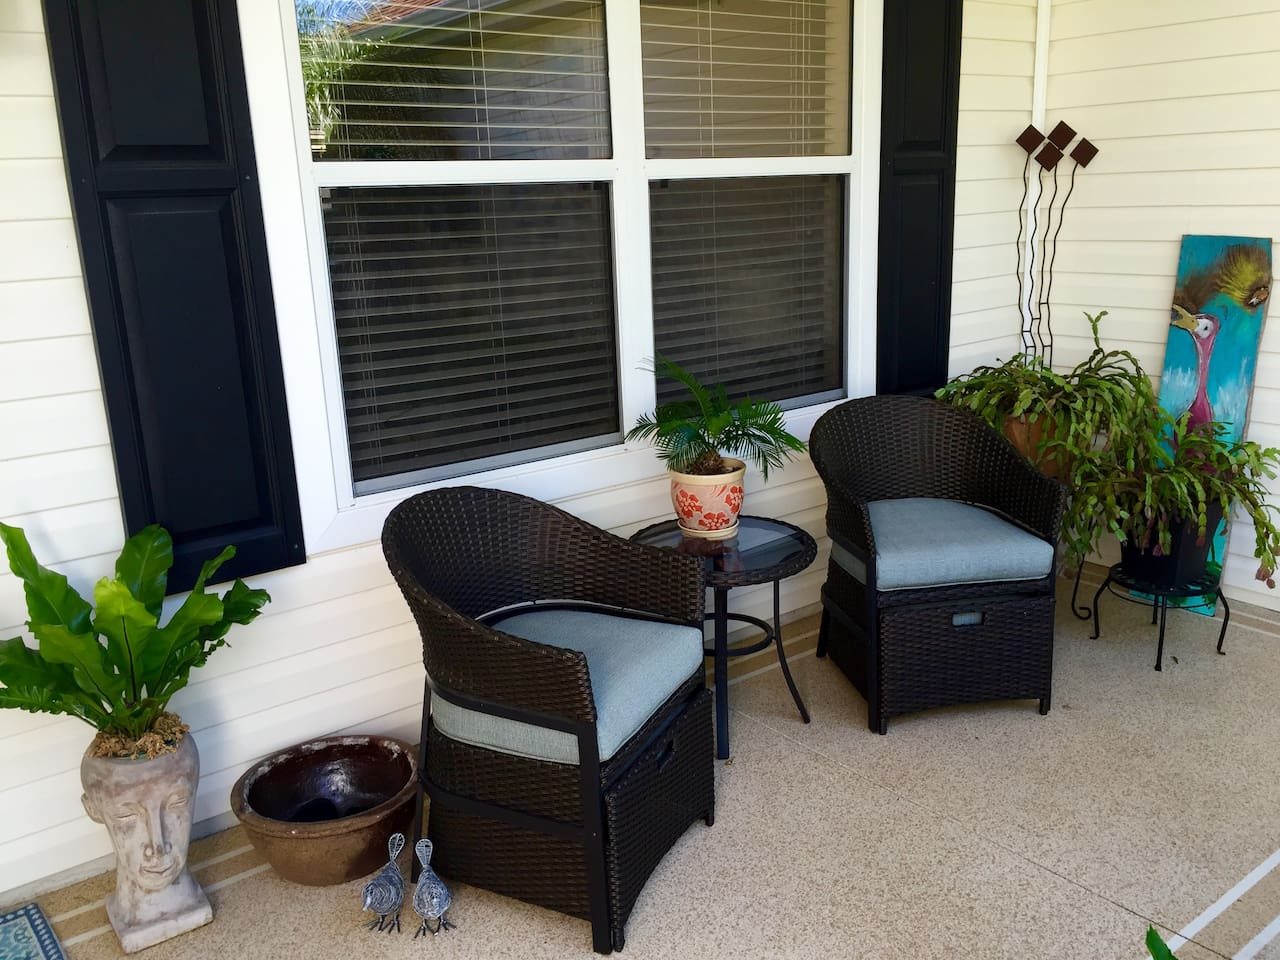 Cozy front porch to relax with a cup of coffee and the Daily Sun newspaper.